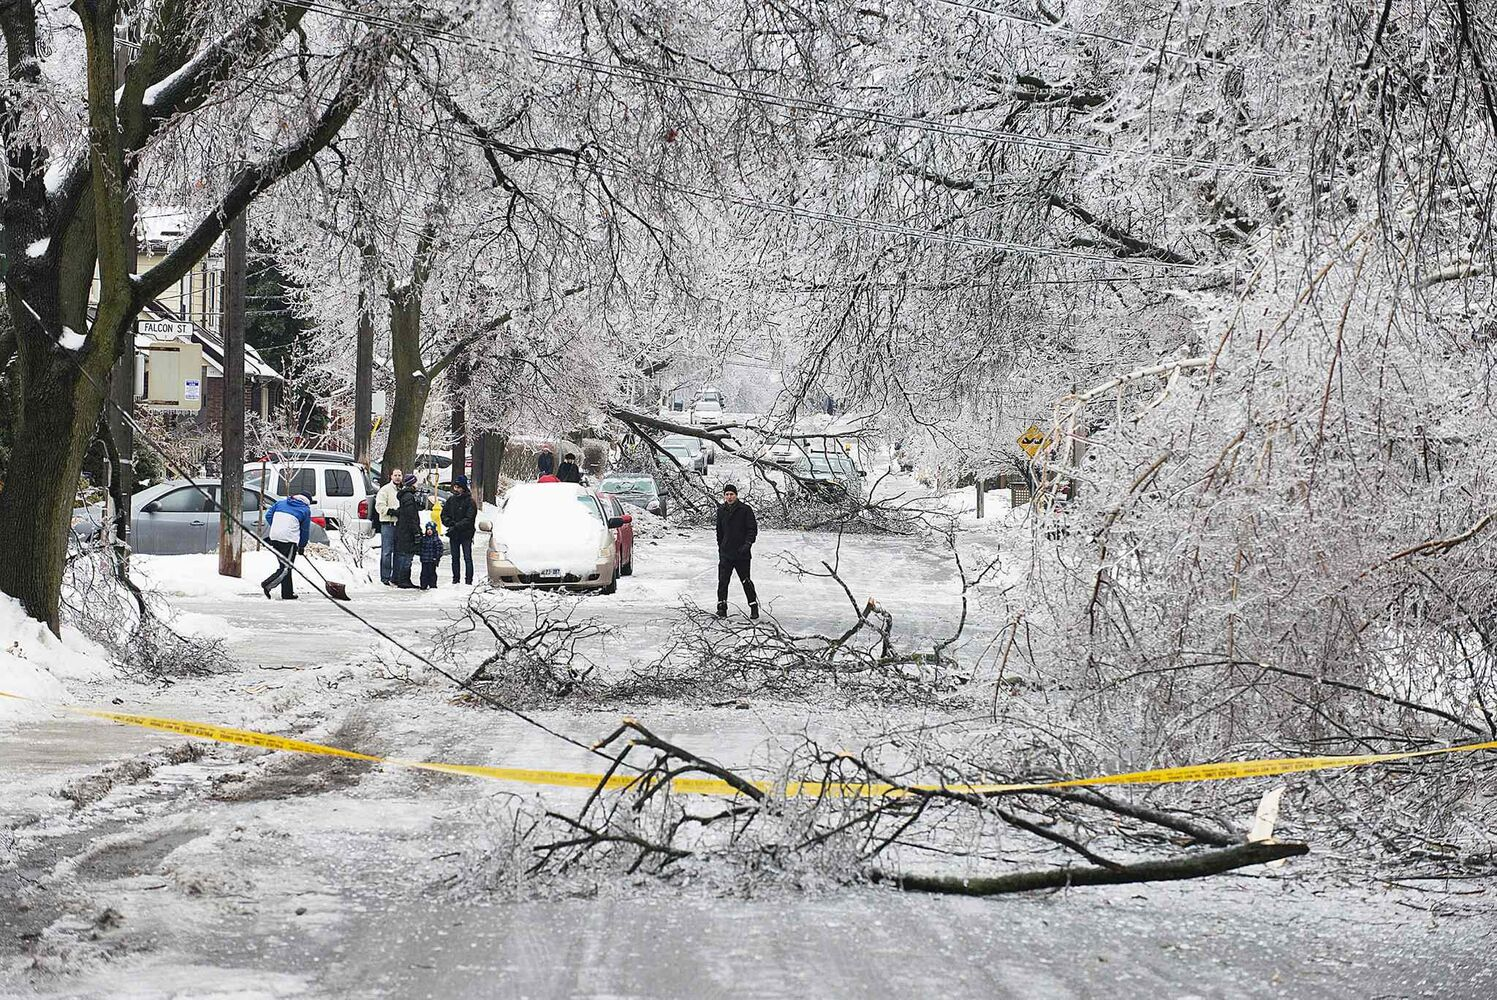 Pedestrians navigate a closed-off Soudan Ave. in Toronto after an ice storm caused havoc, knocking down trees and power lines in much of the city on Sunday.